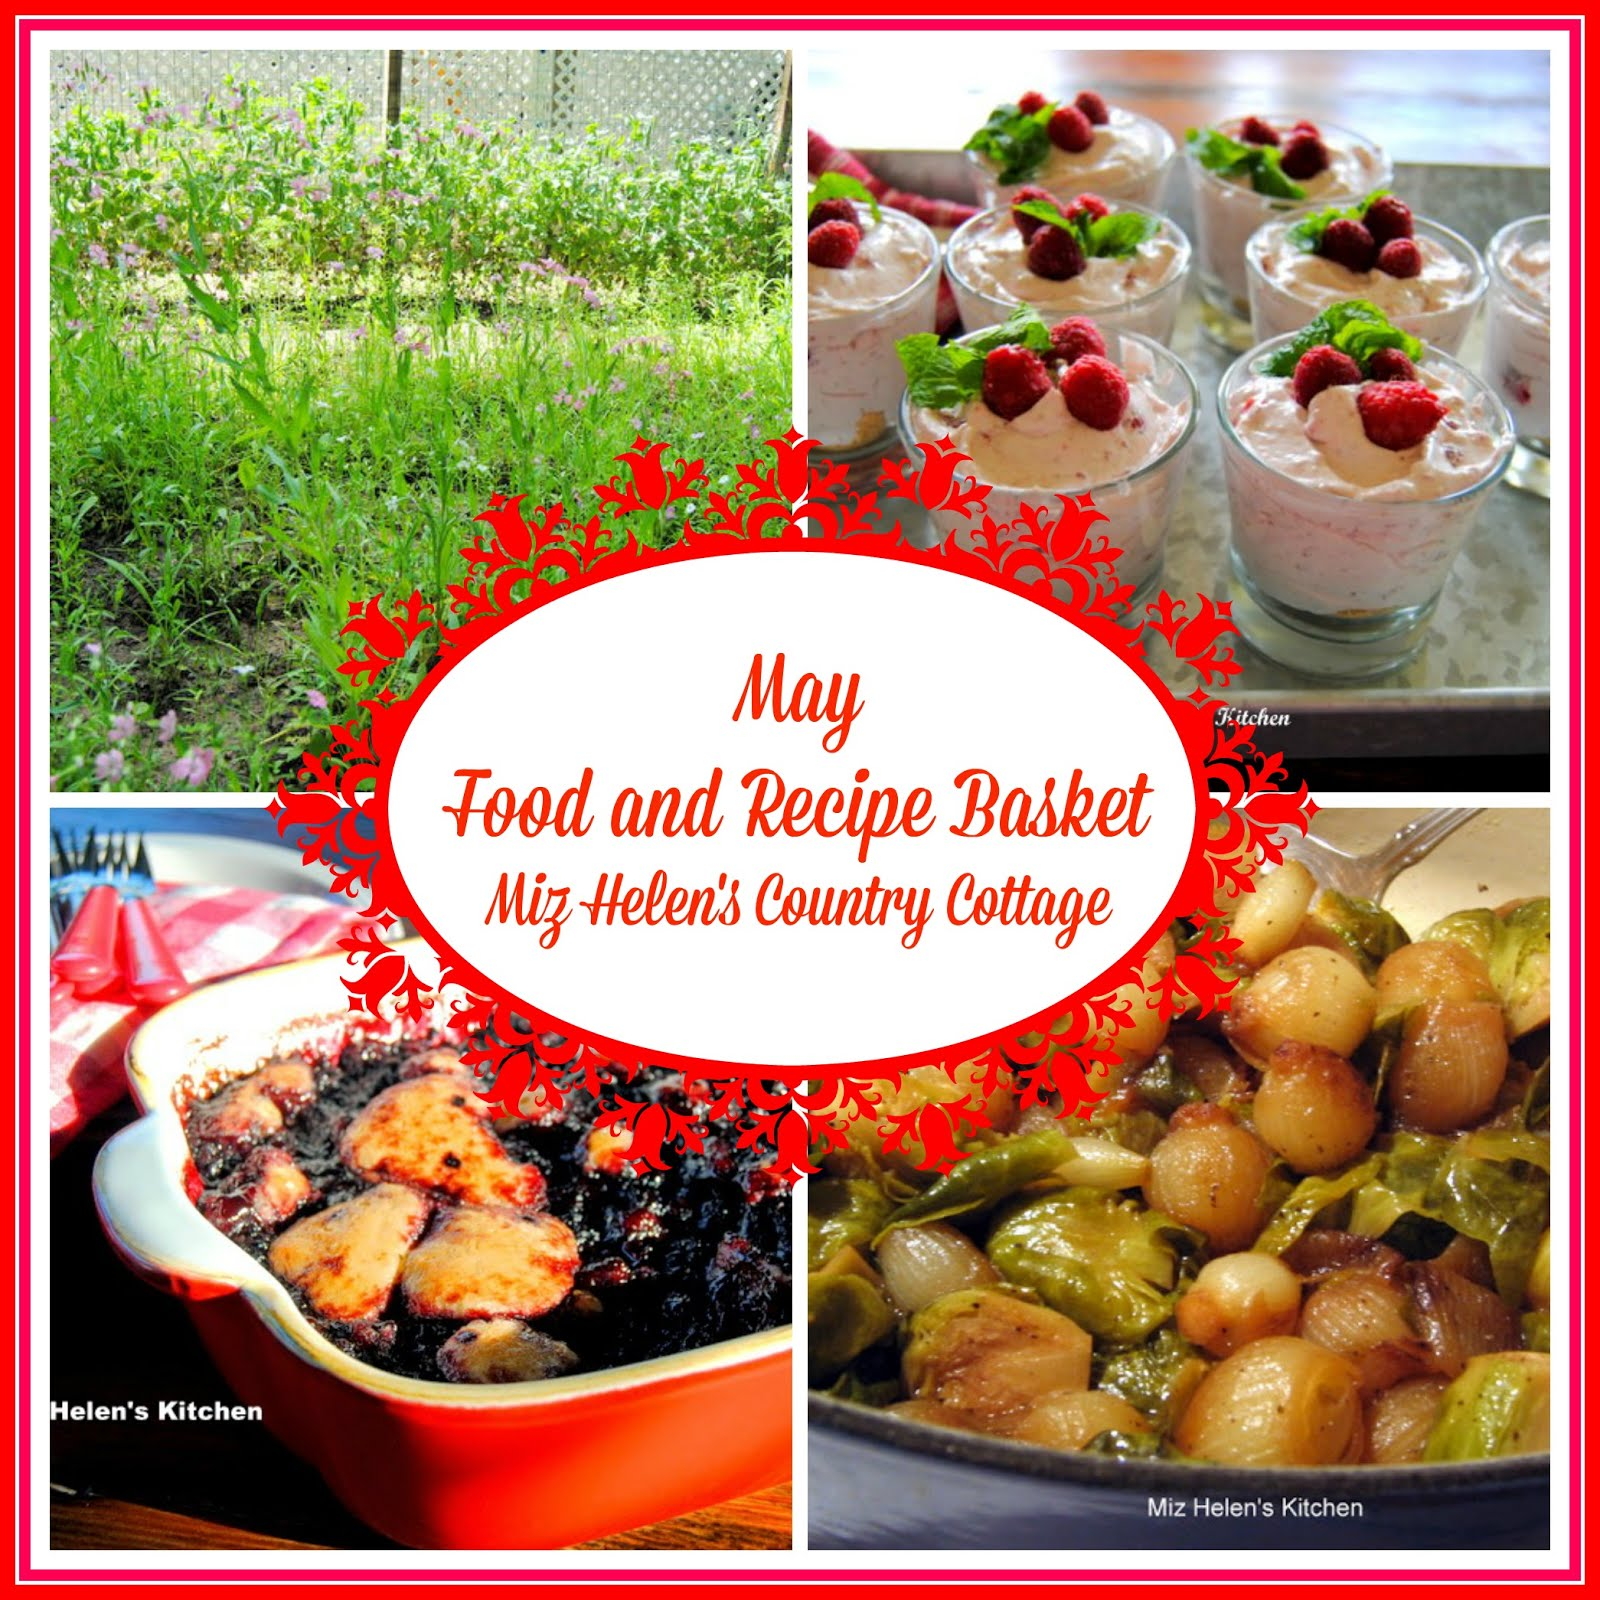 May Food and Recipe Basket